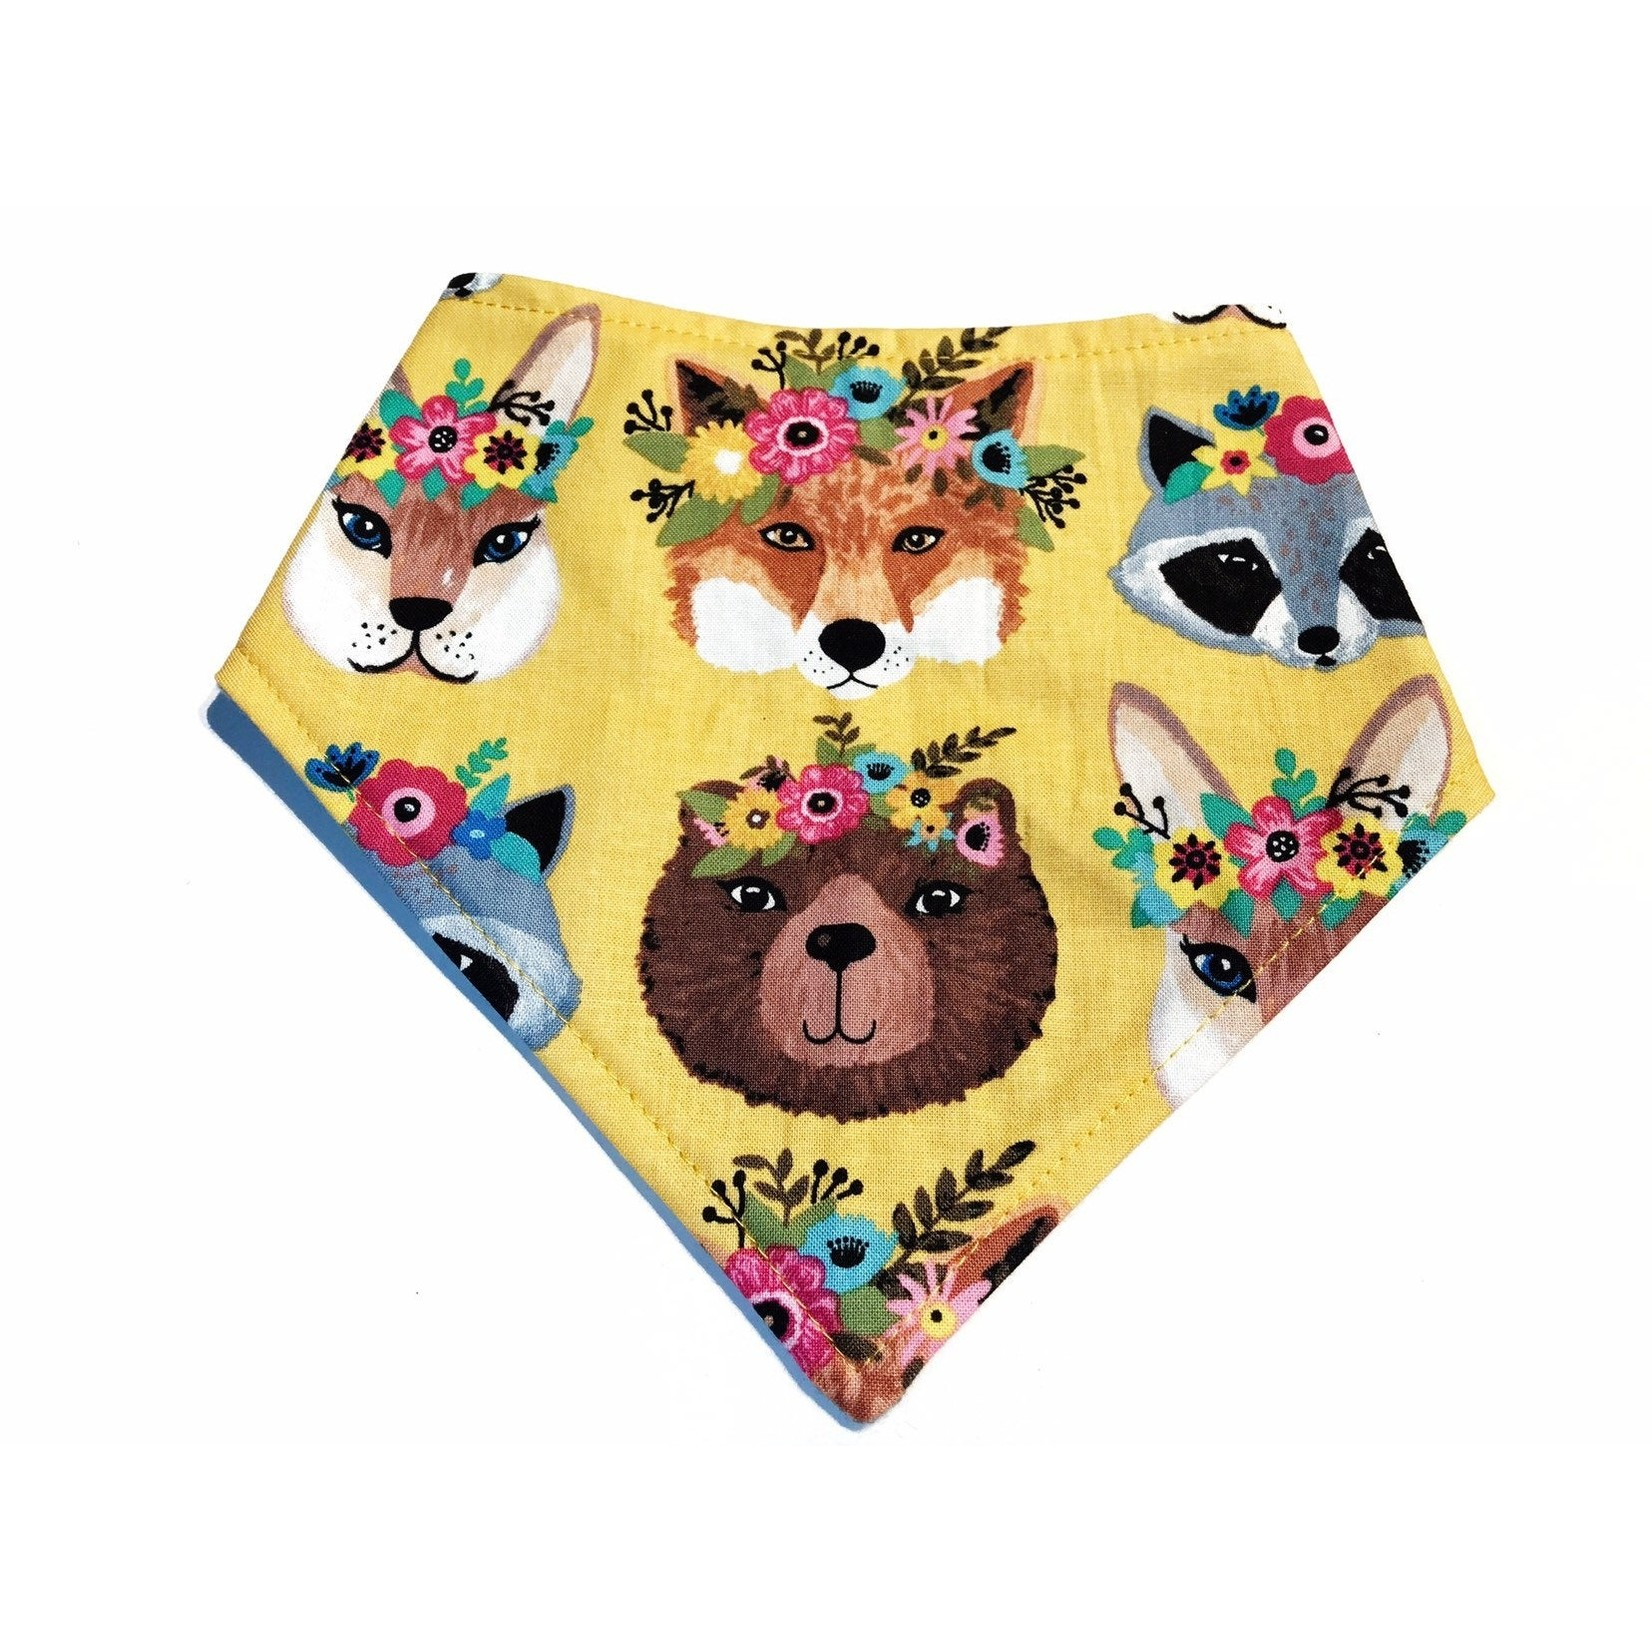 Very Vintage VERY VINTAGE Snap On Bandana Critter Crowns